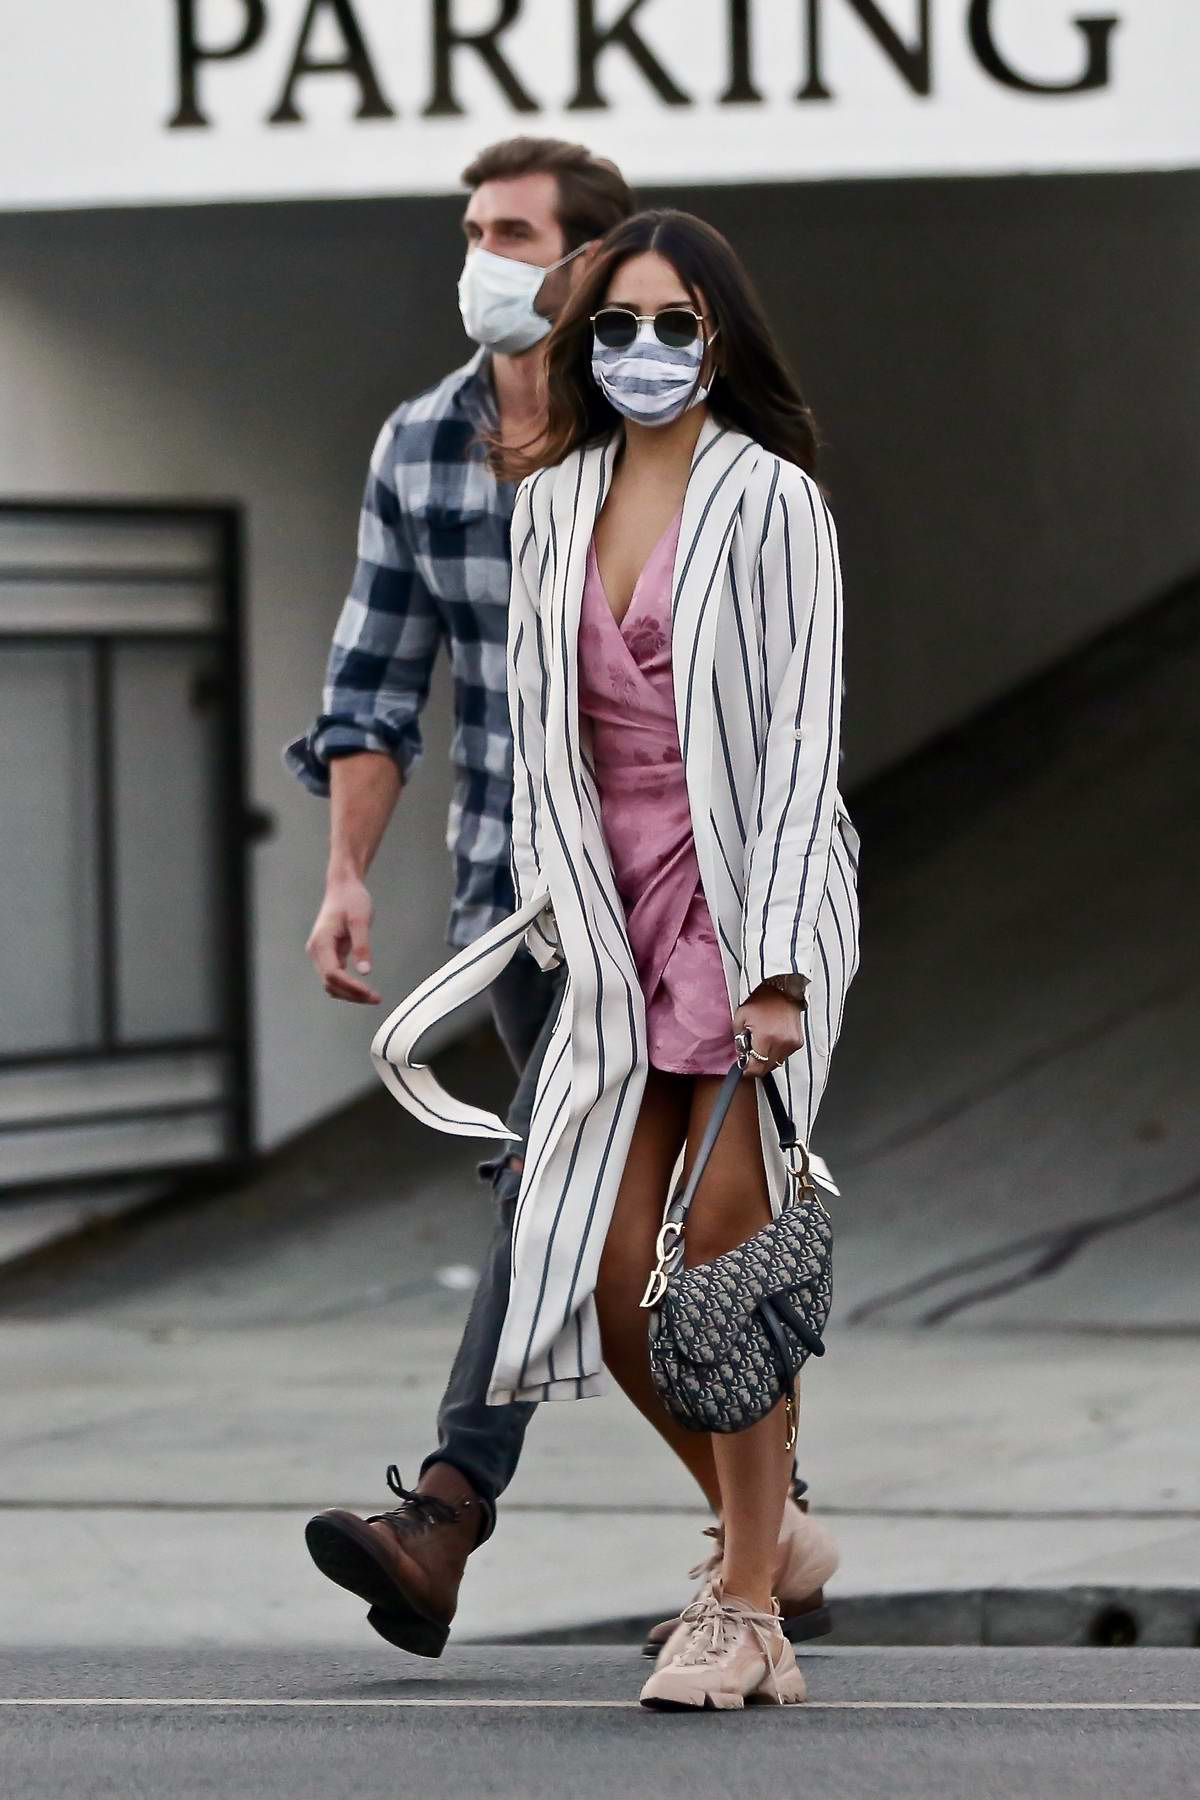 Eiza Gonzalez looks pretty in a pink wrap dress while out on a date with mystery man in Los Angeles